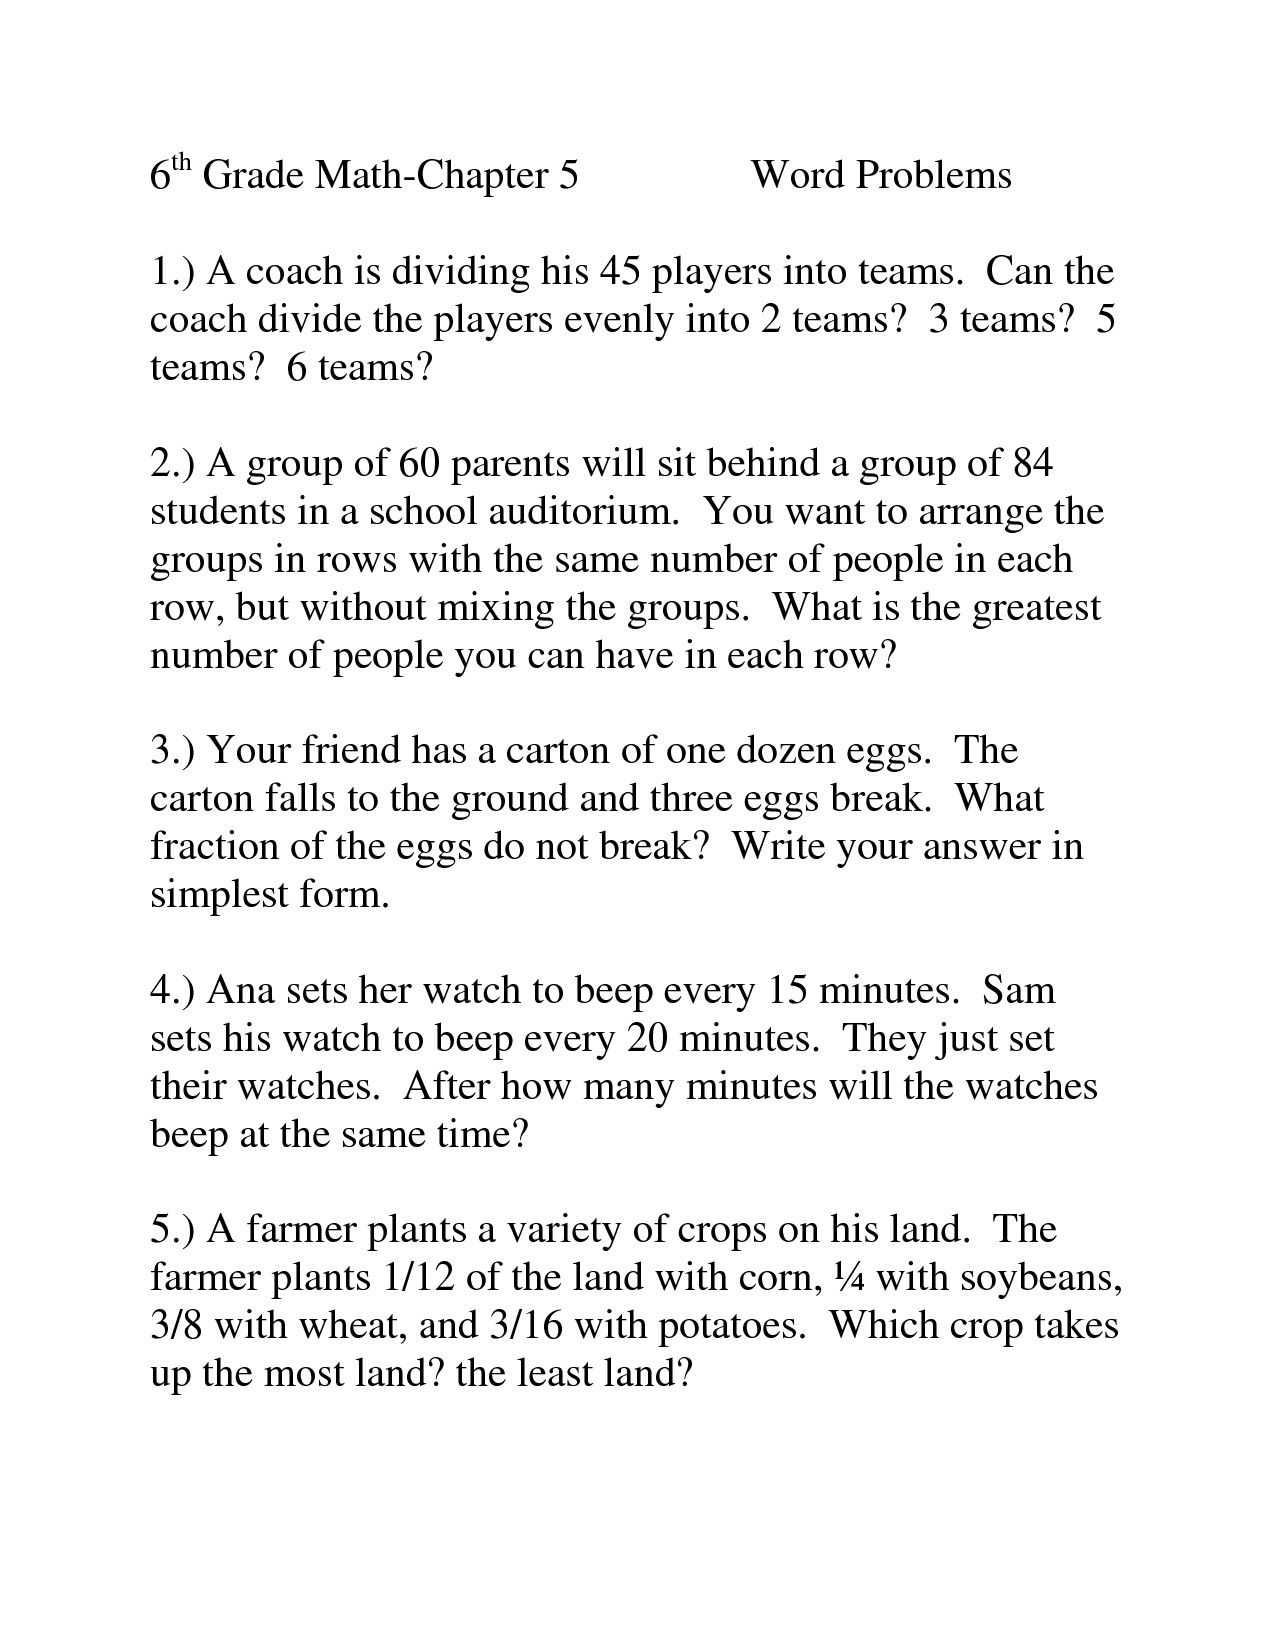 6 Worksheets Real Life Word Problems Part 5 2 In